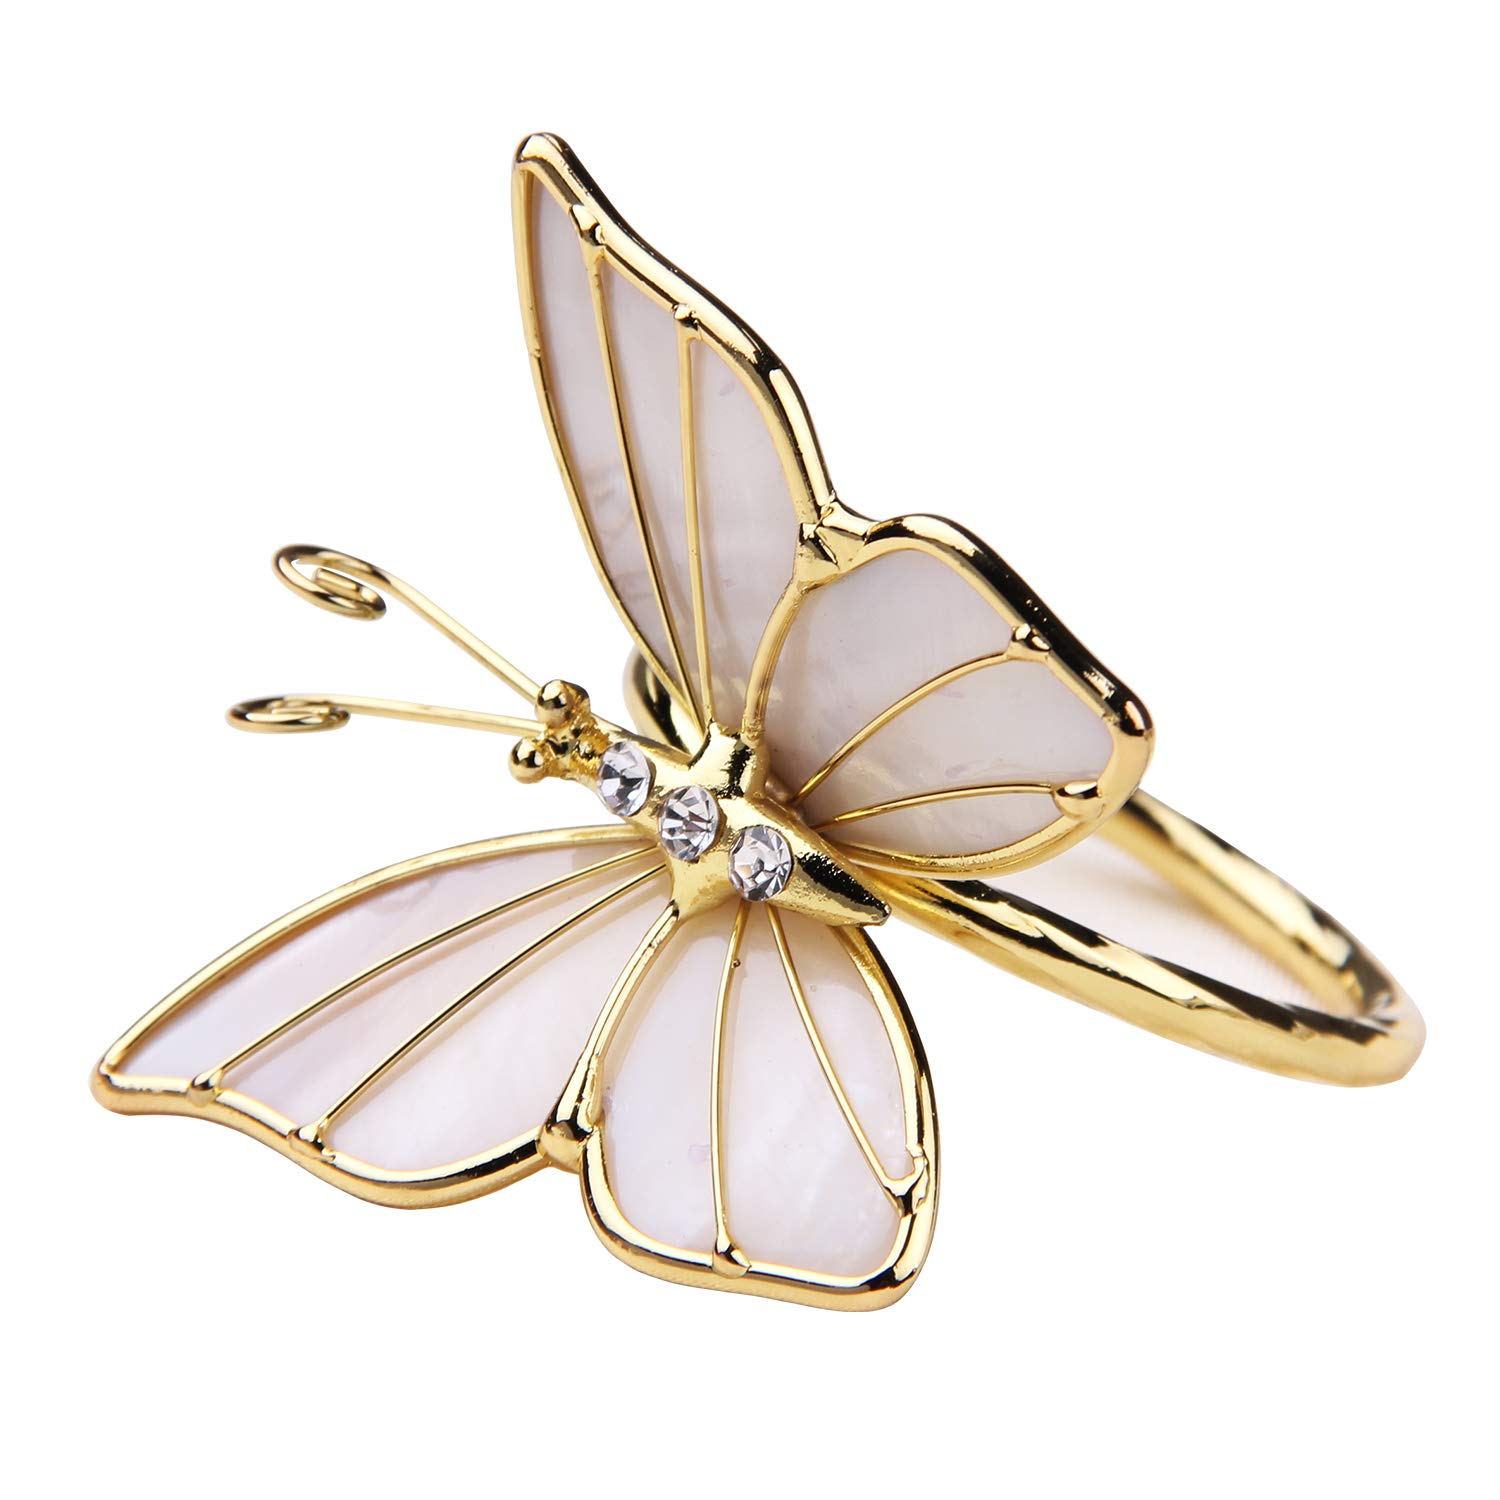 JINHAICHU Butterfly Napkin Rings Set of 2 Metal Table Napkin Rings Shell Rhinestone Napkin Rings Modern Napkin holder rings for Wedding Hotel Party Table Decor Gift (Silver) JINHAICHU Home NR-BF-01